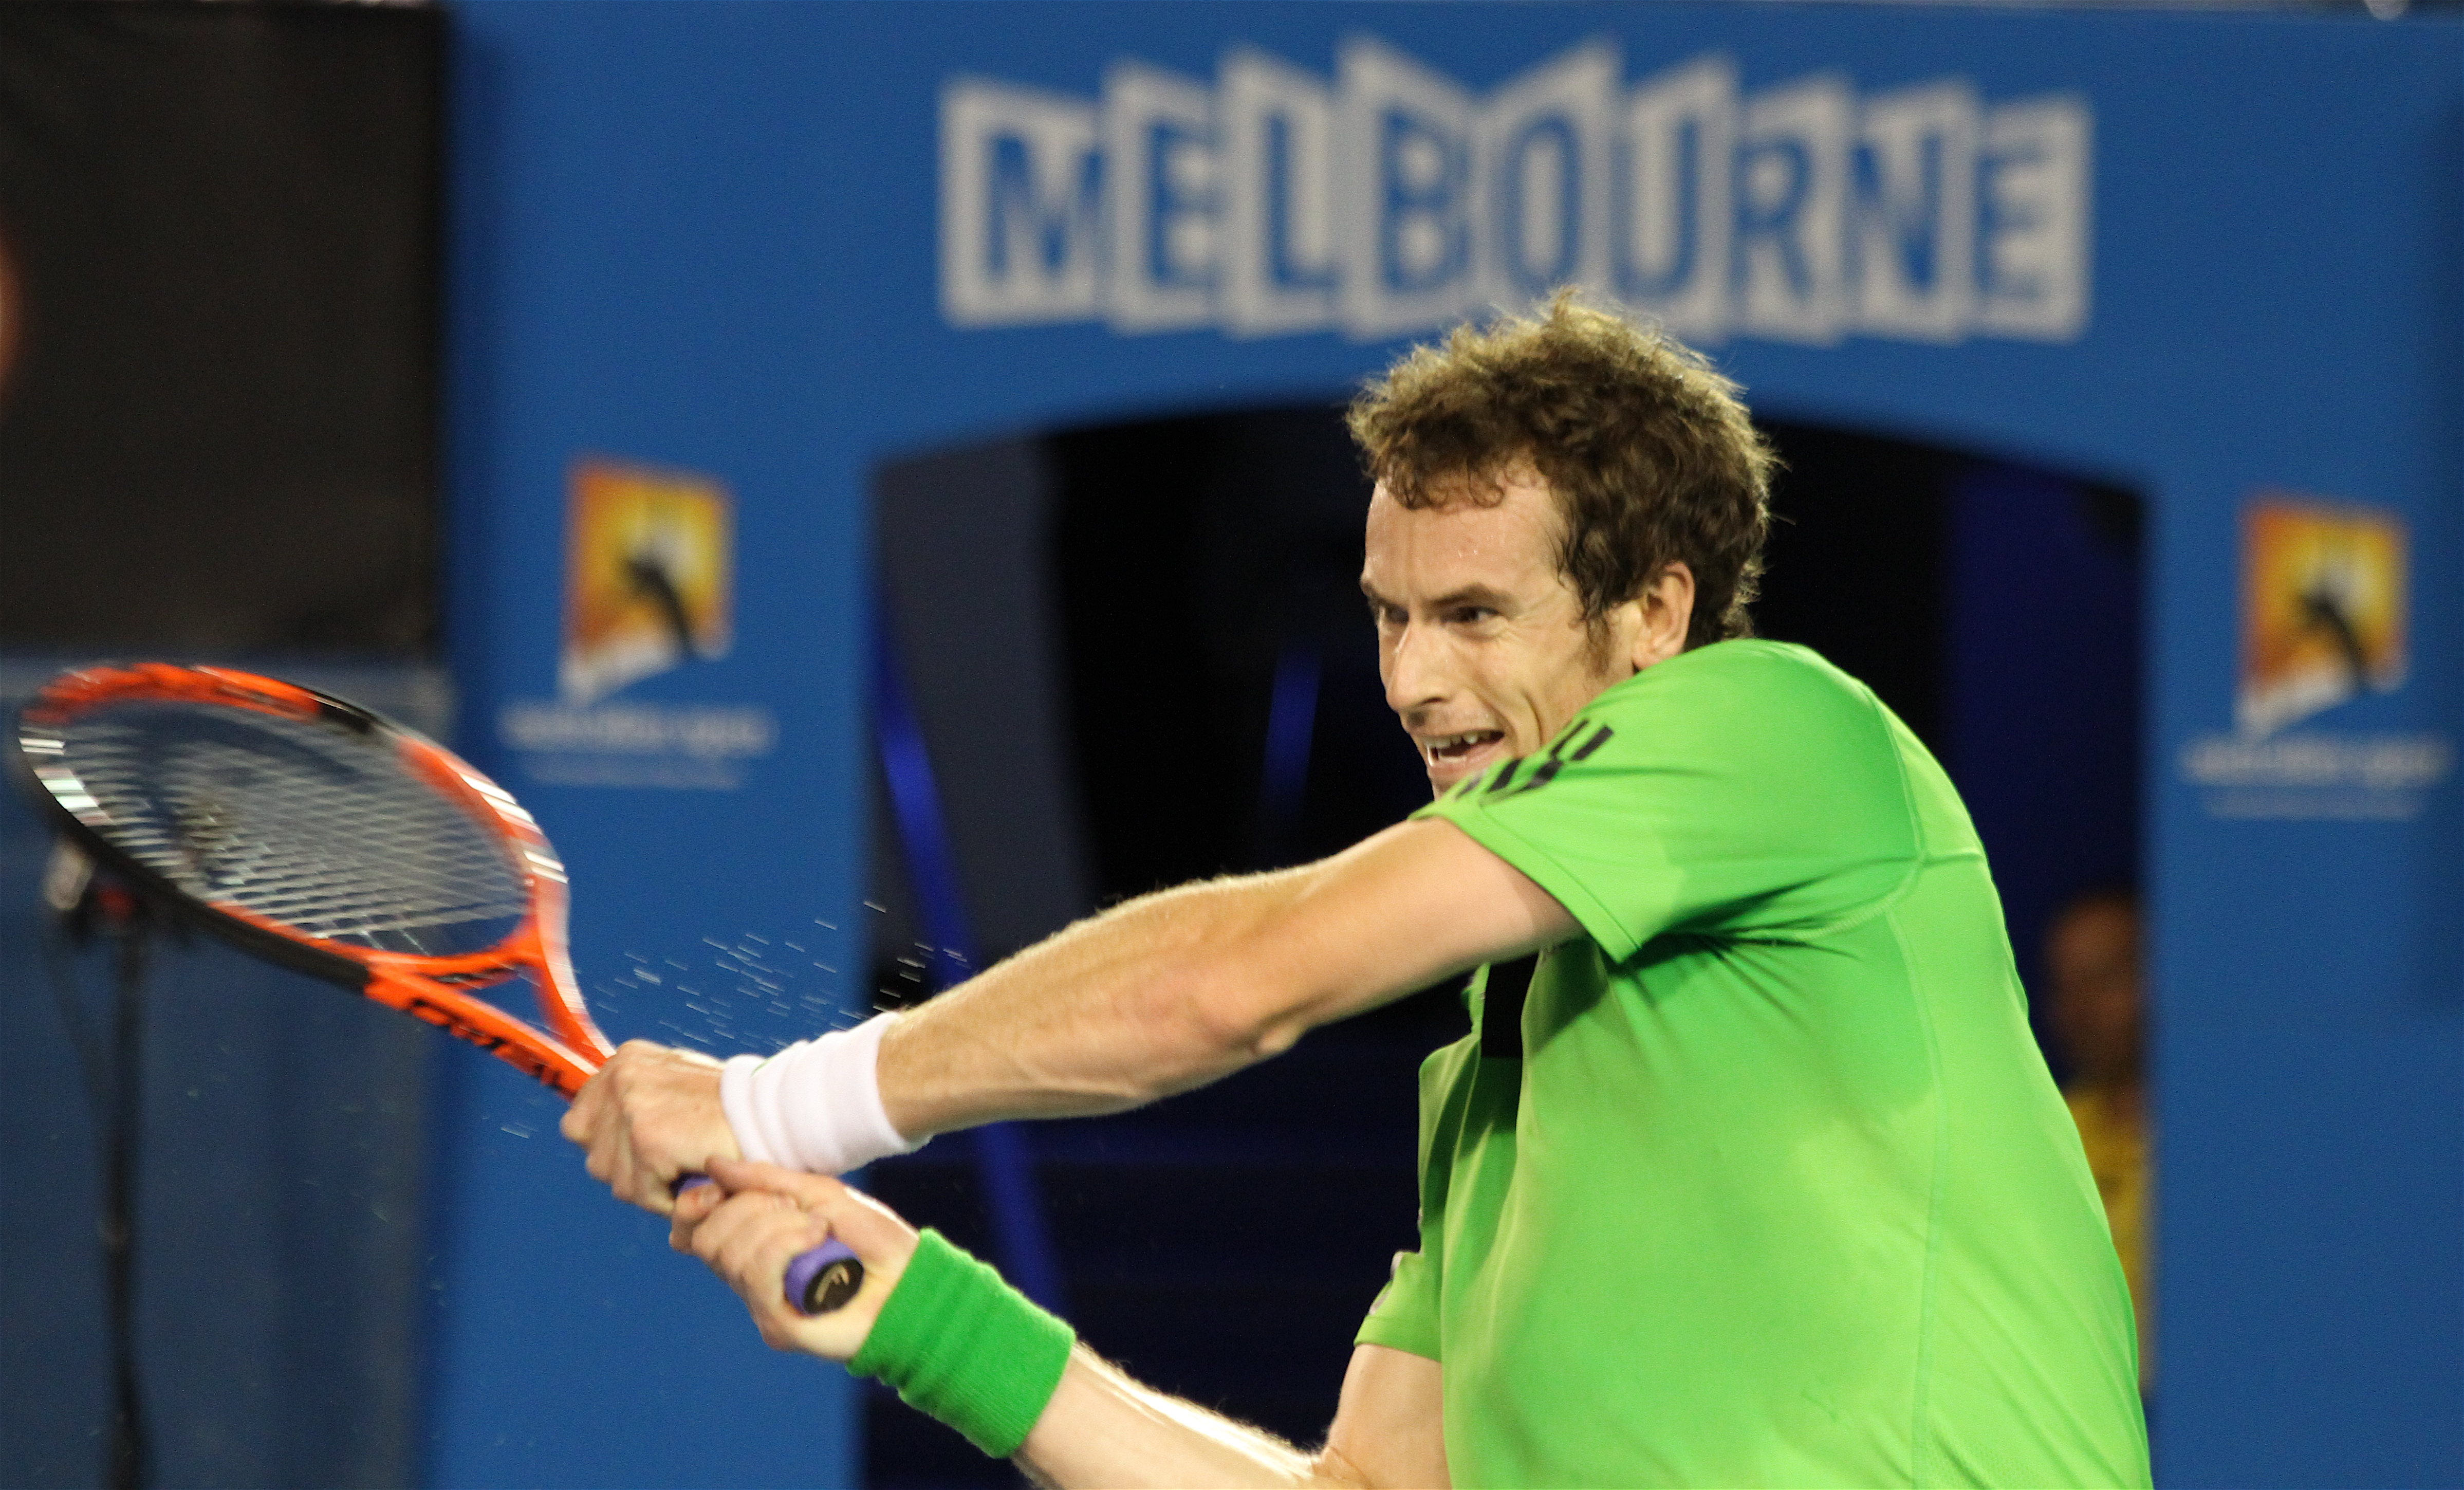 Andy Murray at the 2011 Australian Open 2.jpg